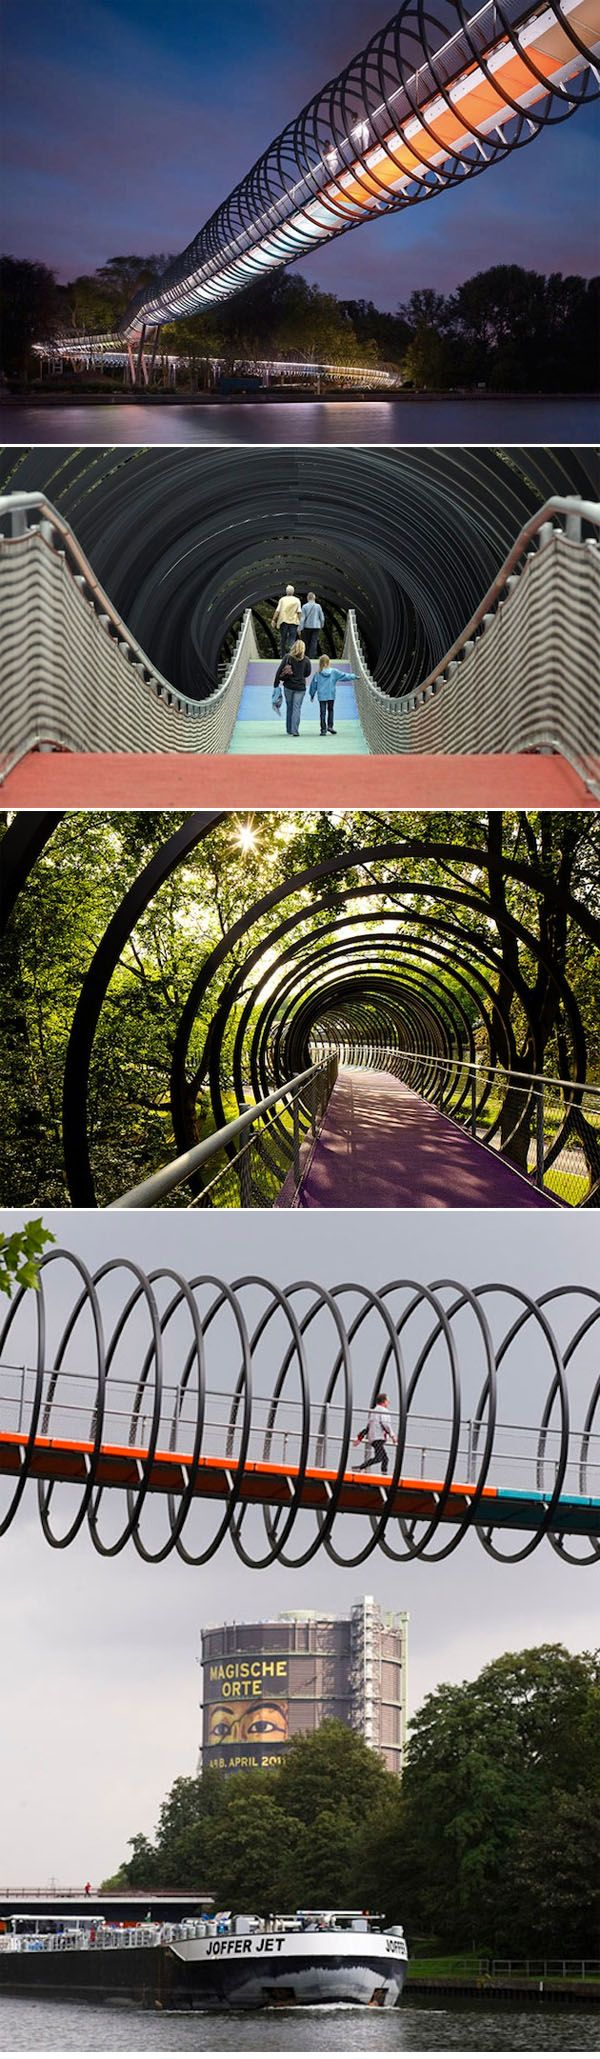 """Artist Tobias Rehberger is the creative behind Oberhausen, Germany's """"Slinky Springs To Fame"""" bridge. After an intense collaboration with structural designers of Schlaich Bergermann and Partner, the 496 coil bridge came to fruition."""